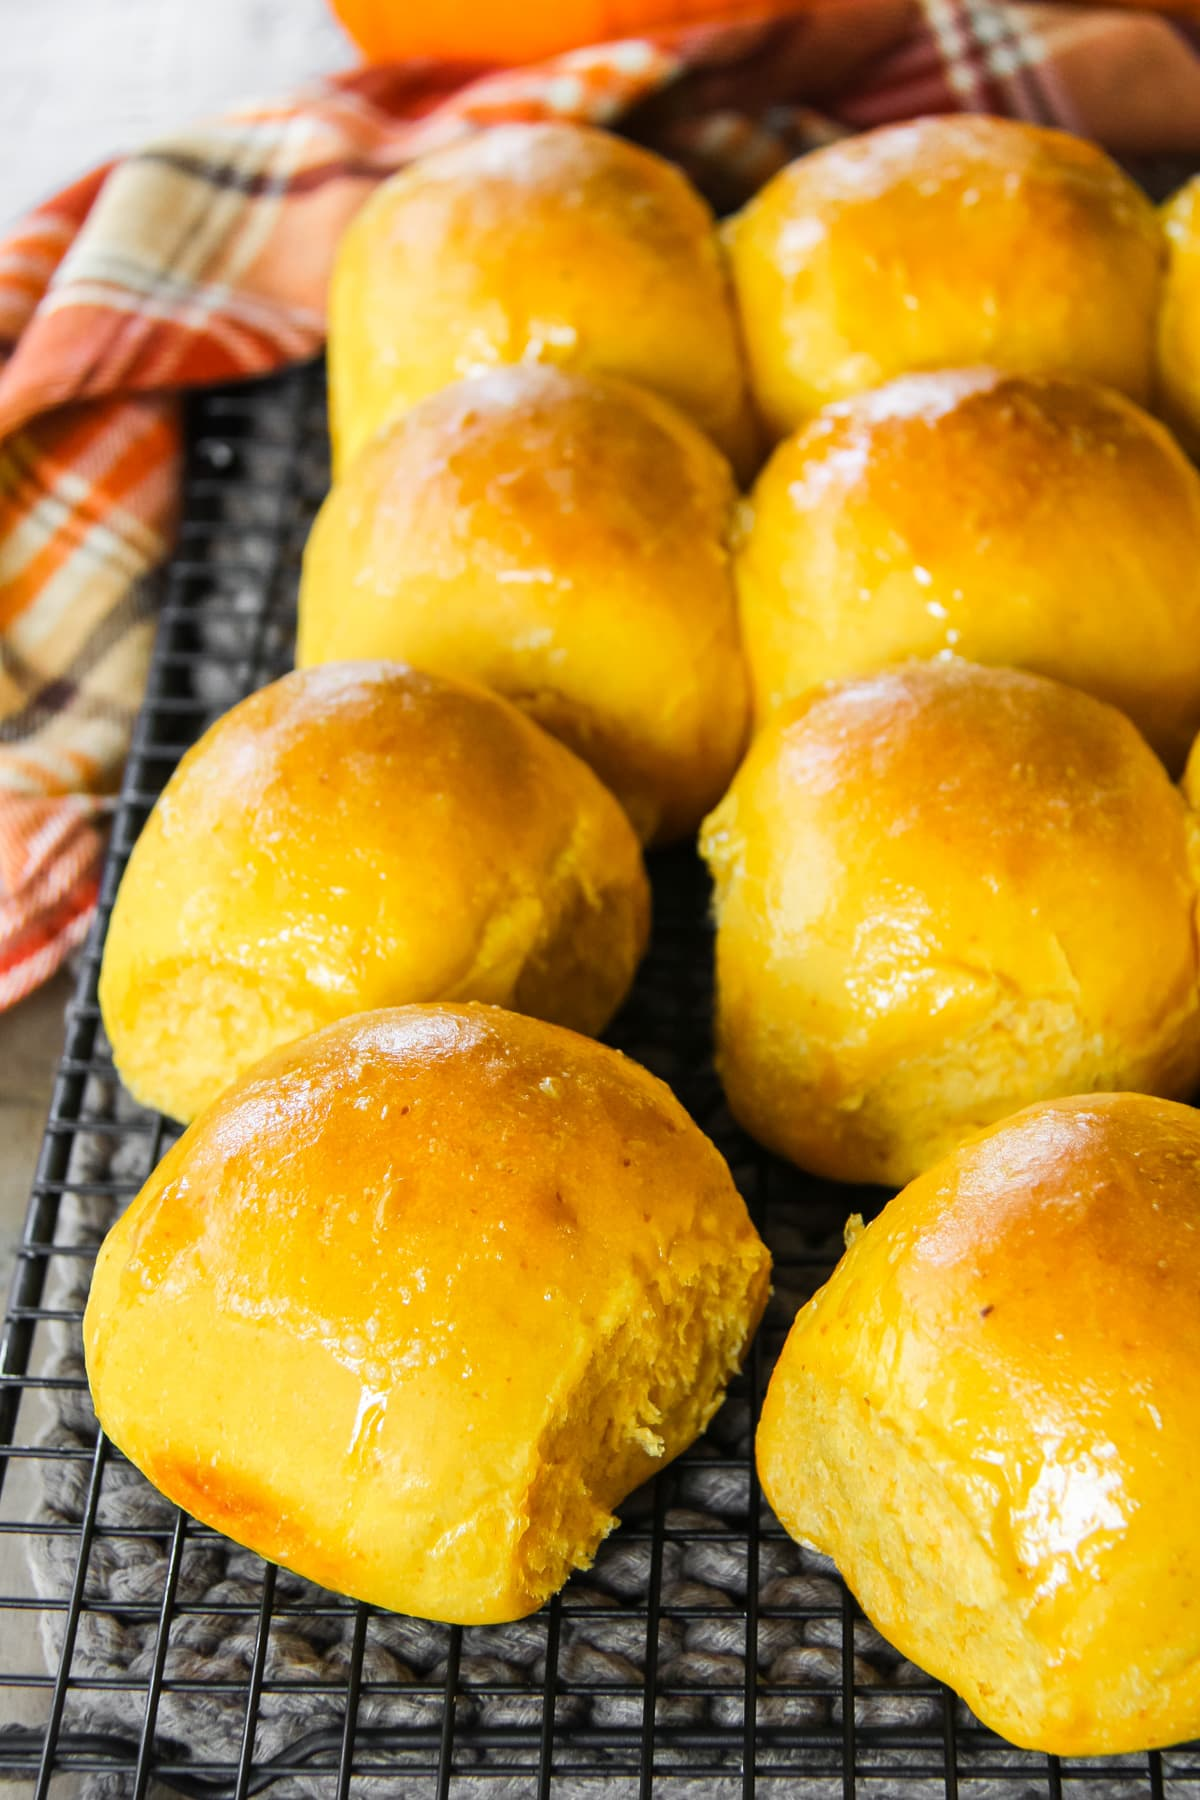 freshly baked Pumpkin Dinner Rolls cooling on a black wire cooling rack. off to the side is an orange plaid napkin